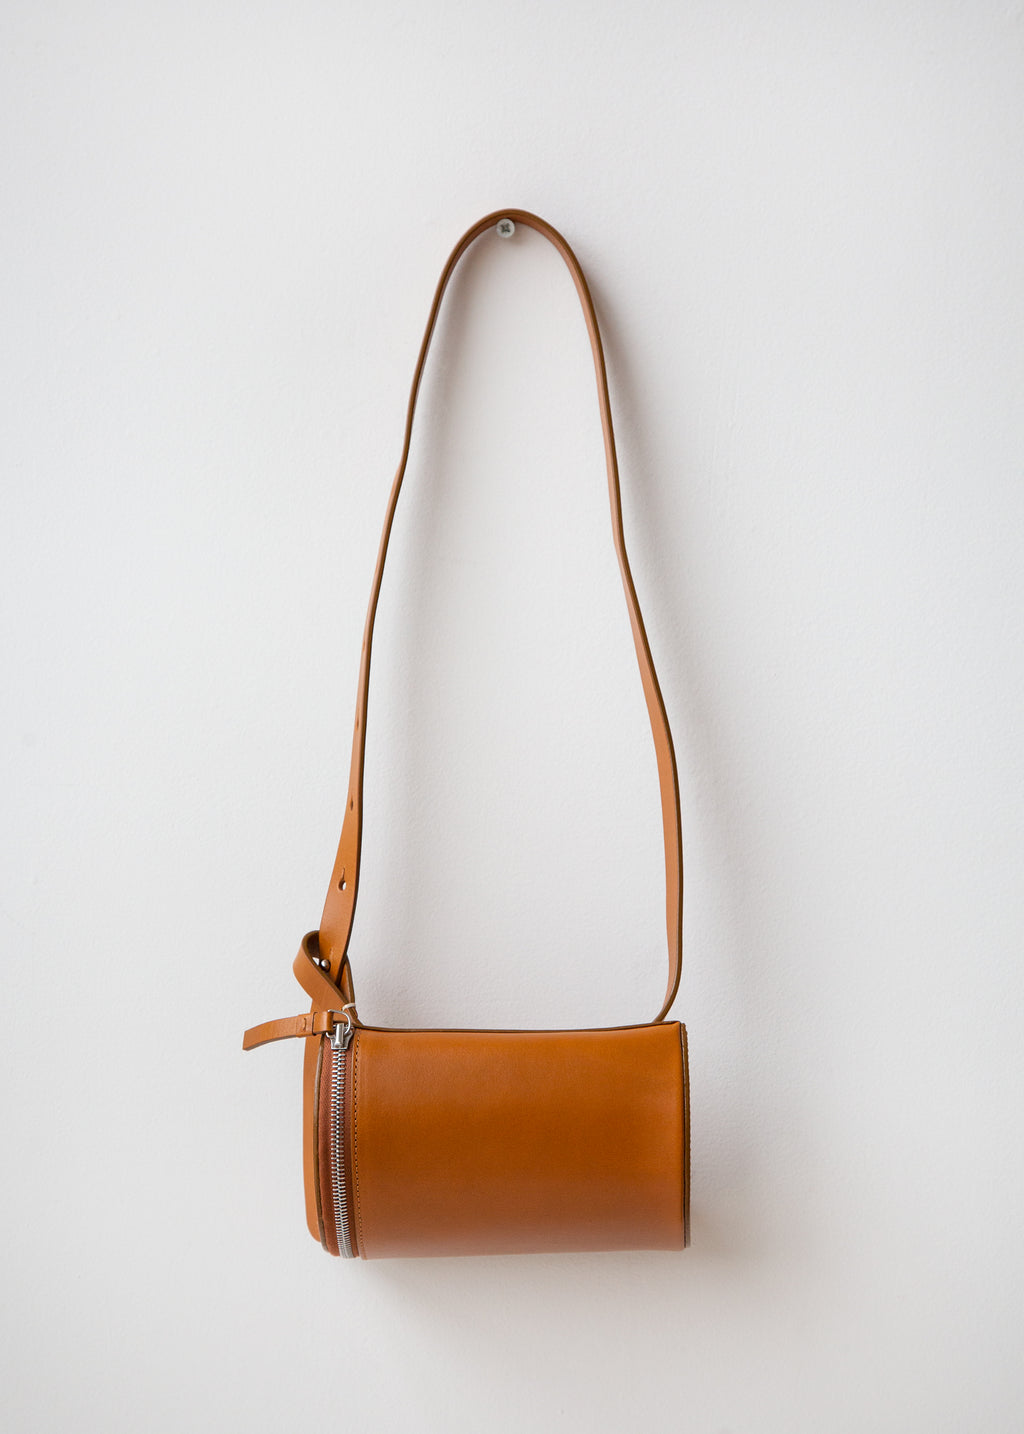 Beltpack in Chestnut Leather